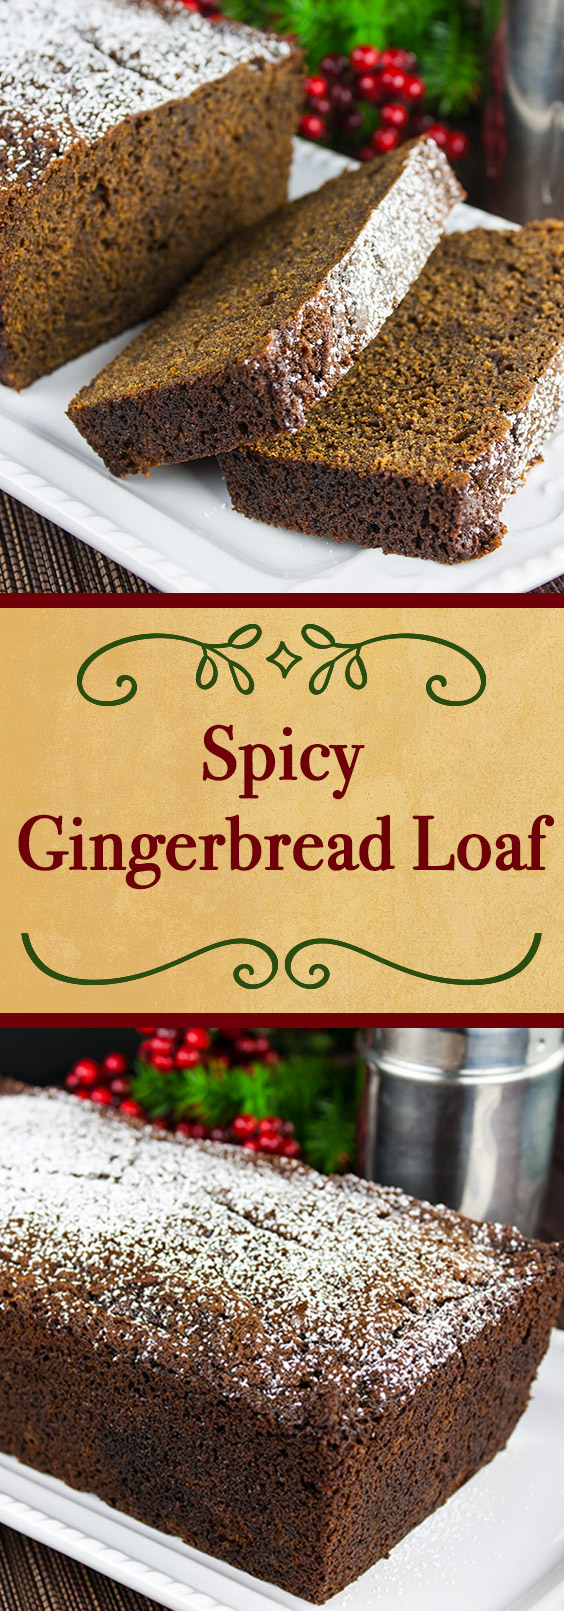 Spicy Gingerbread Loaf - It's not just for the holidays. Moist, slightly sticky, sweet and loaded with spicy goodness. This gingerbread loaf needs nothing more than a nice, piping hot cup of coffee to accompany it. #holidays #christmas #gingerbread #easy #recipe